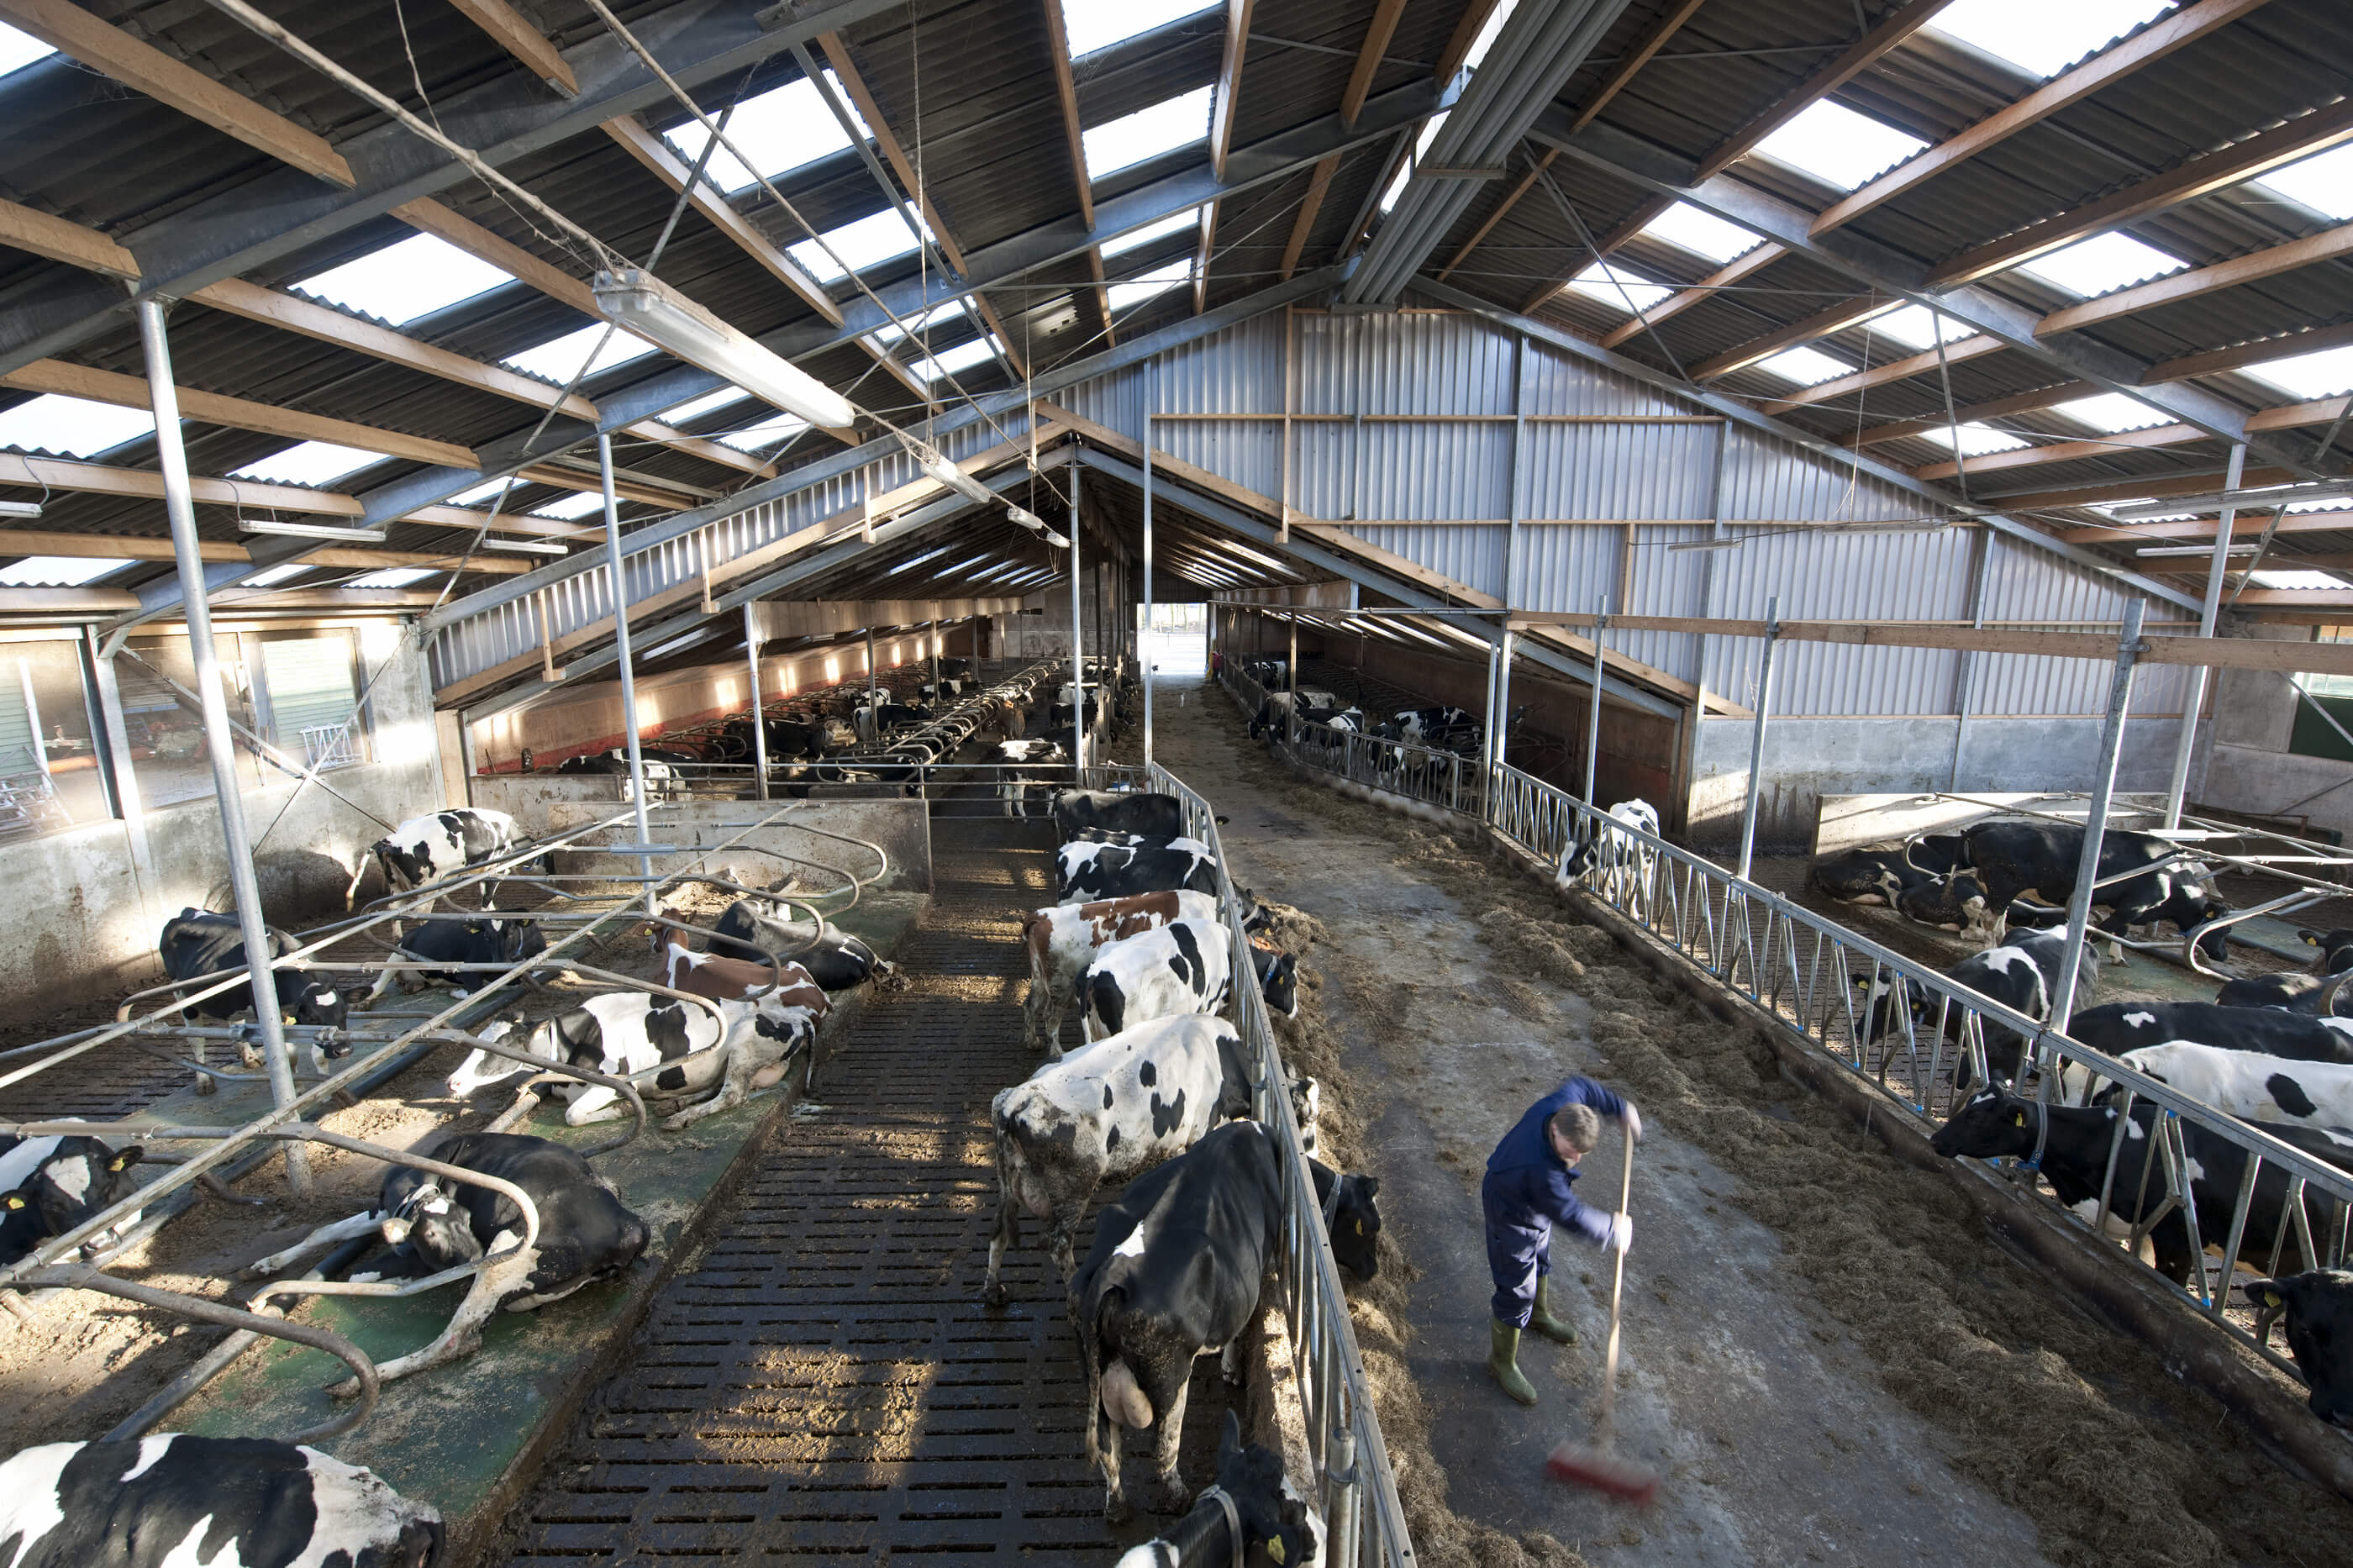 Welded steel structural frame supporting a barn